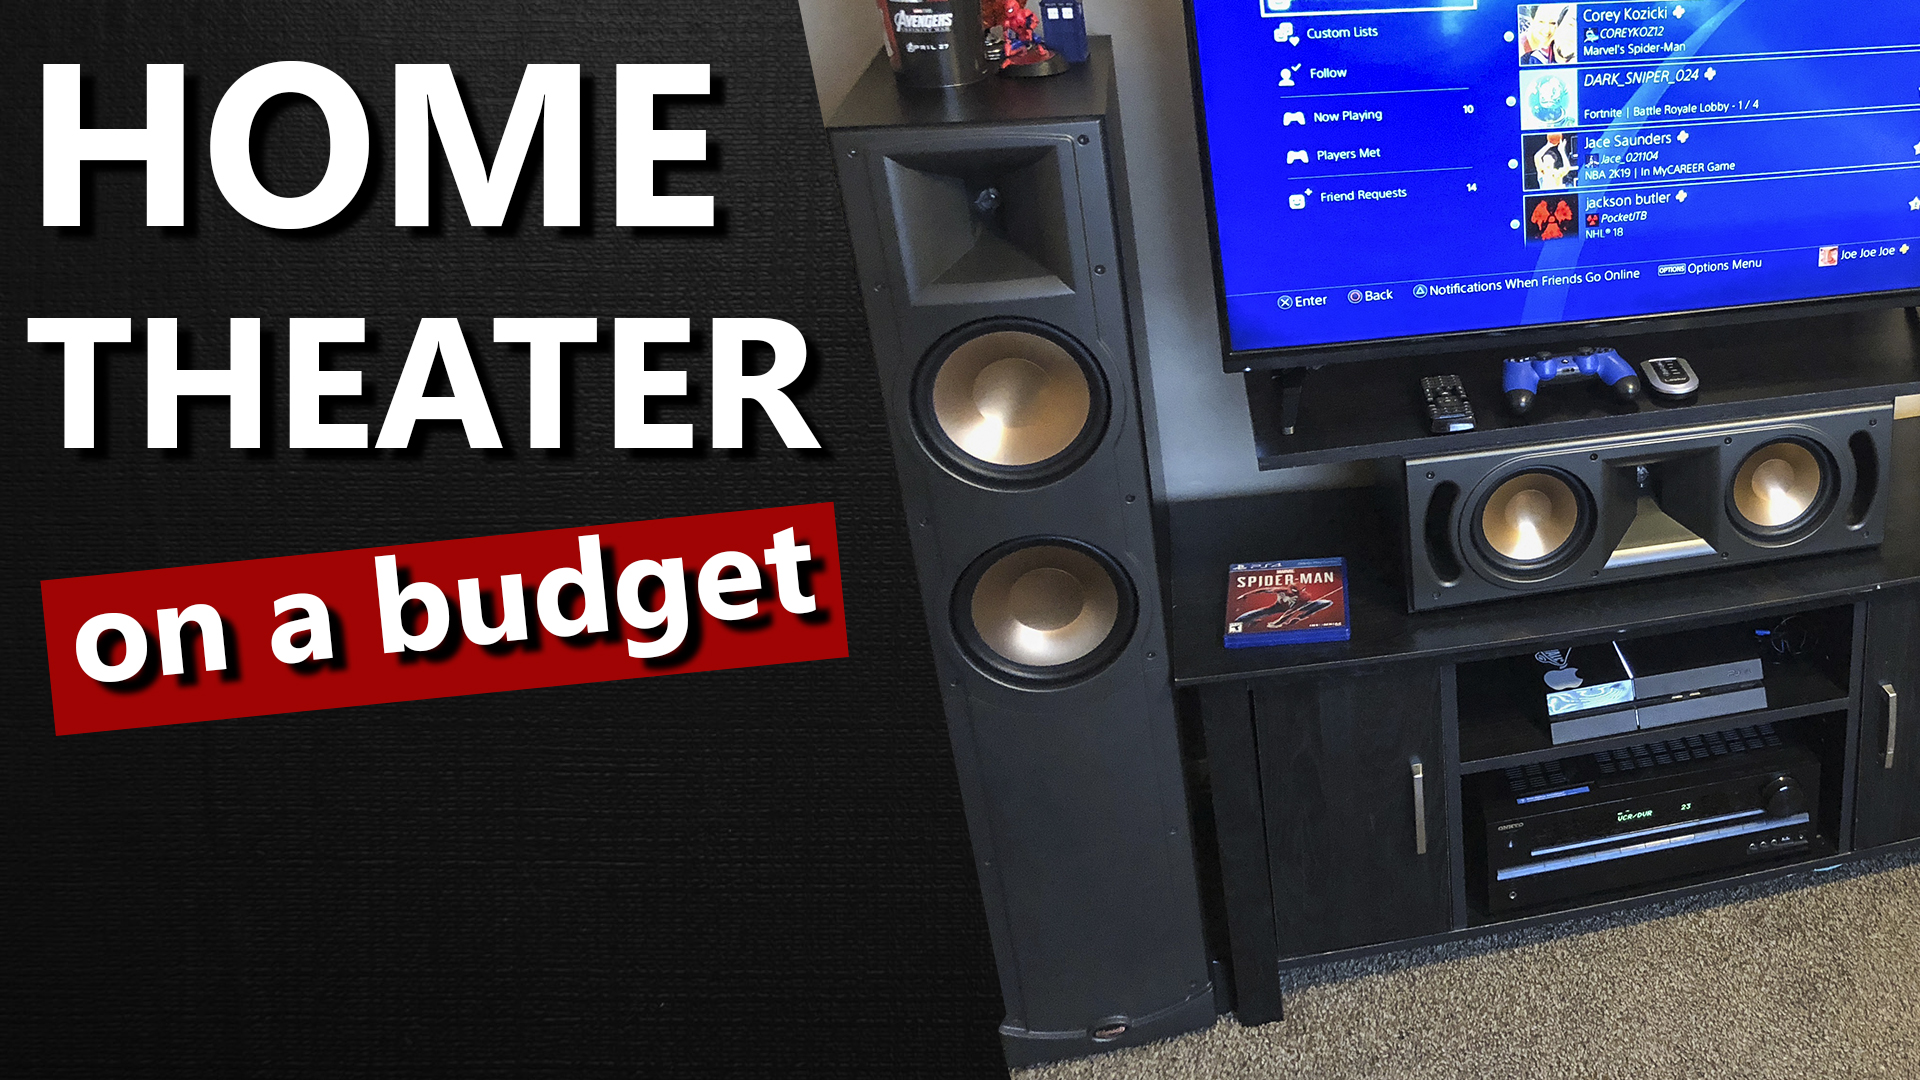 Home Theater on a Budget Thumbnail